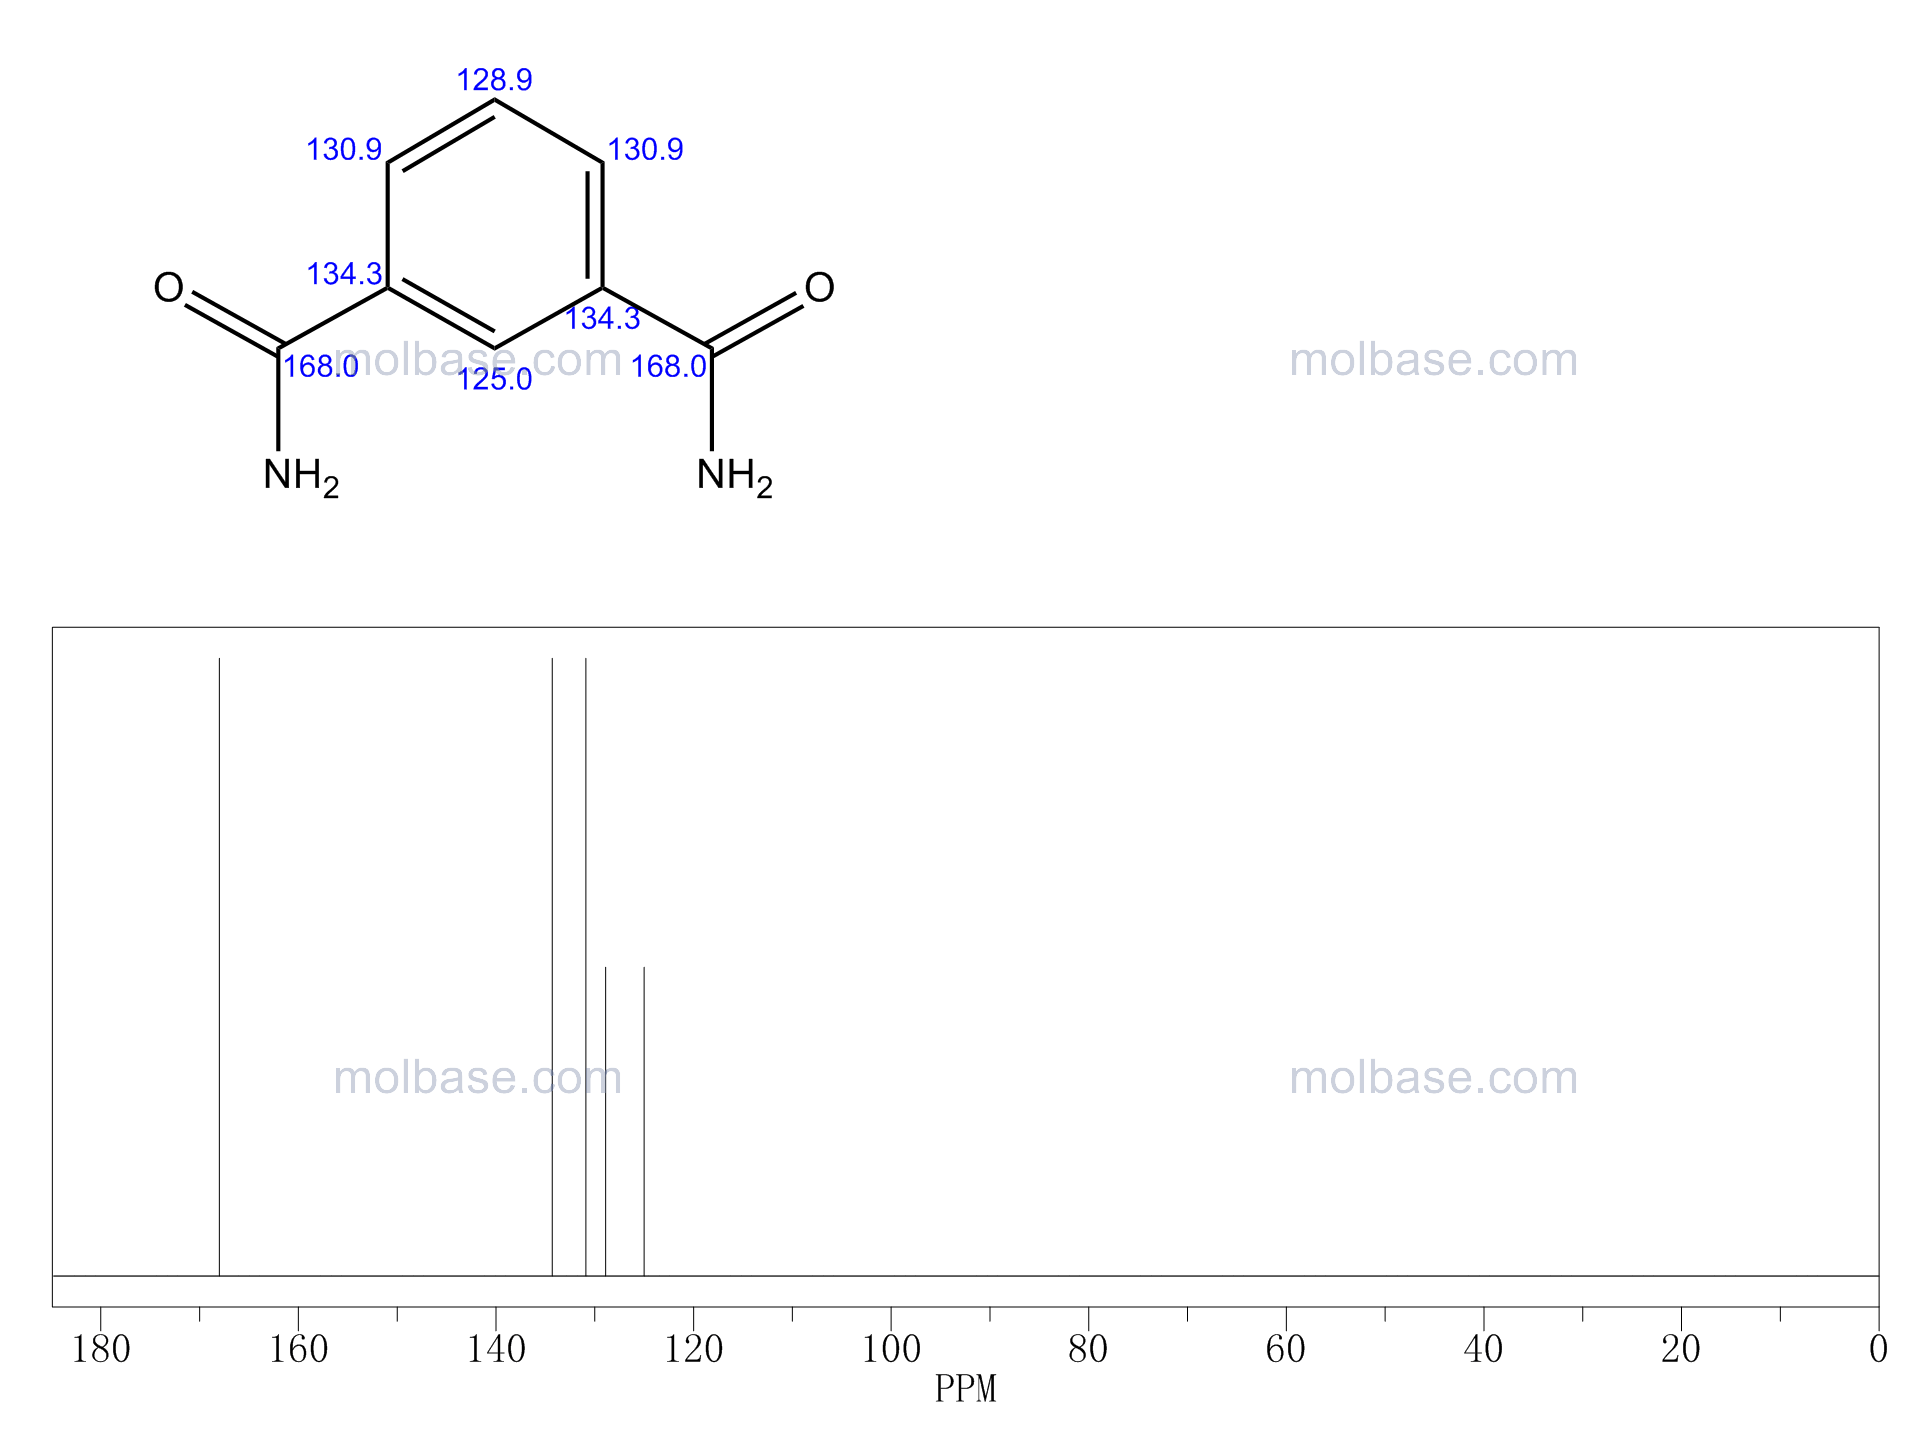 isophthalamide NMR spectra analysis, Chemical CAS NO. 1740-57-4 NMR spectral analysis, isophthalamide C-NMR spectrum